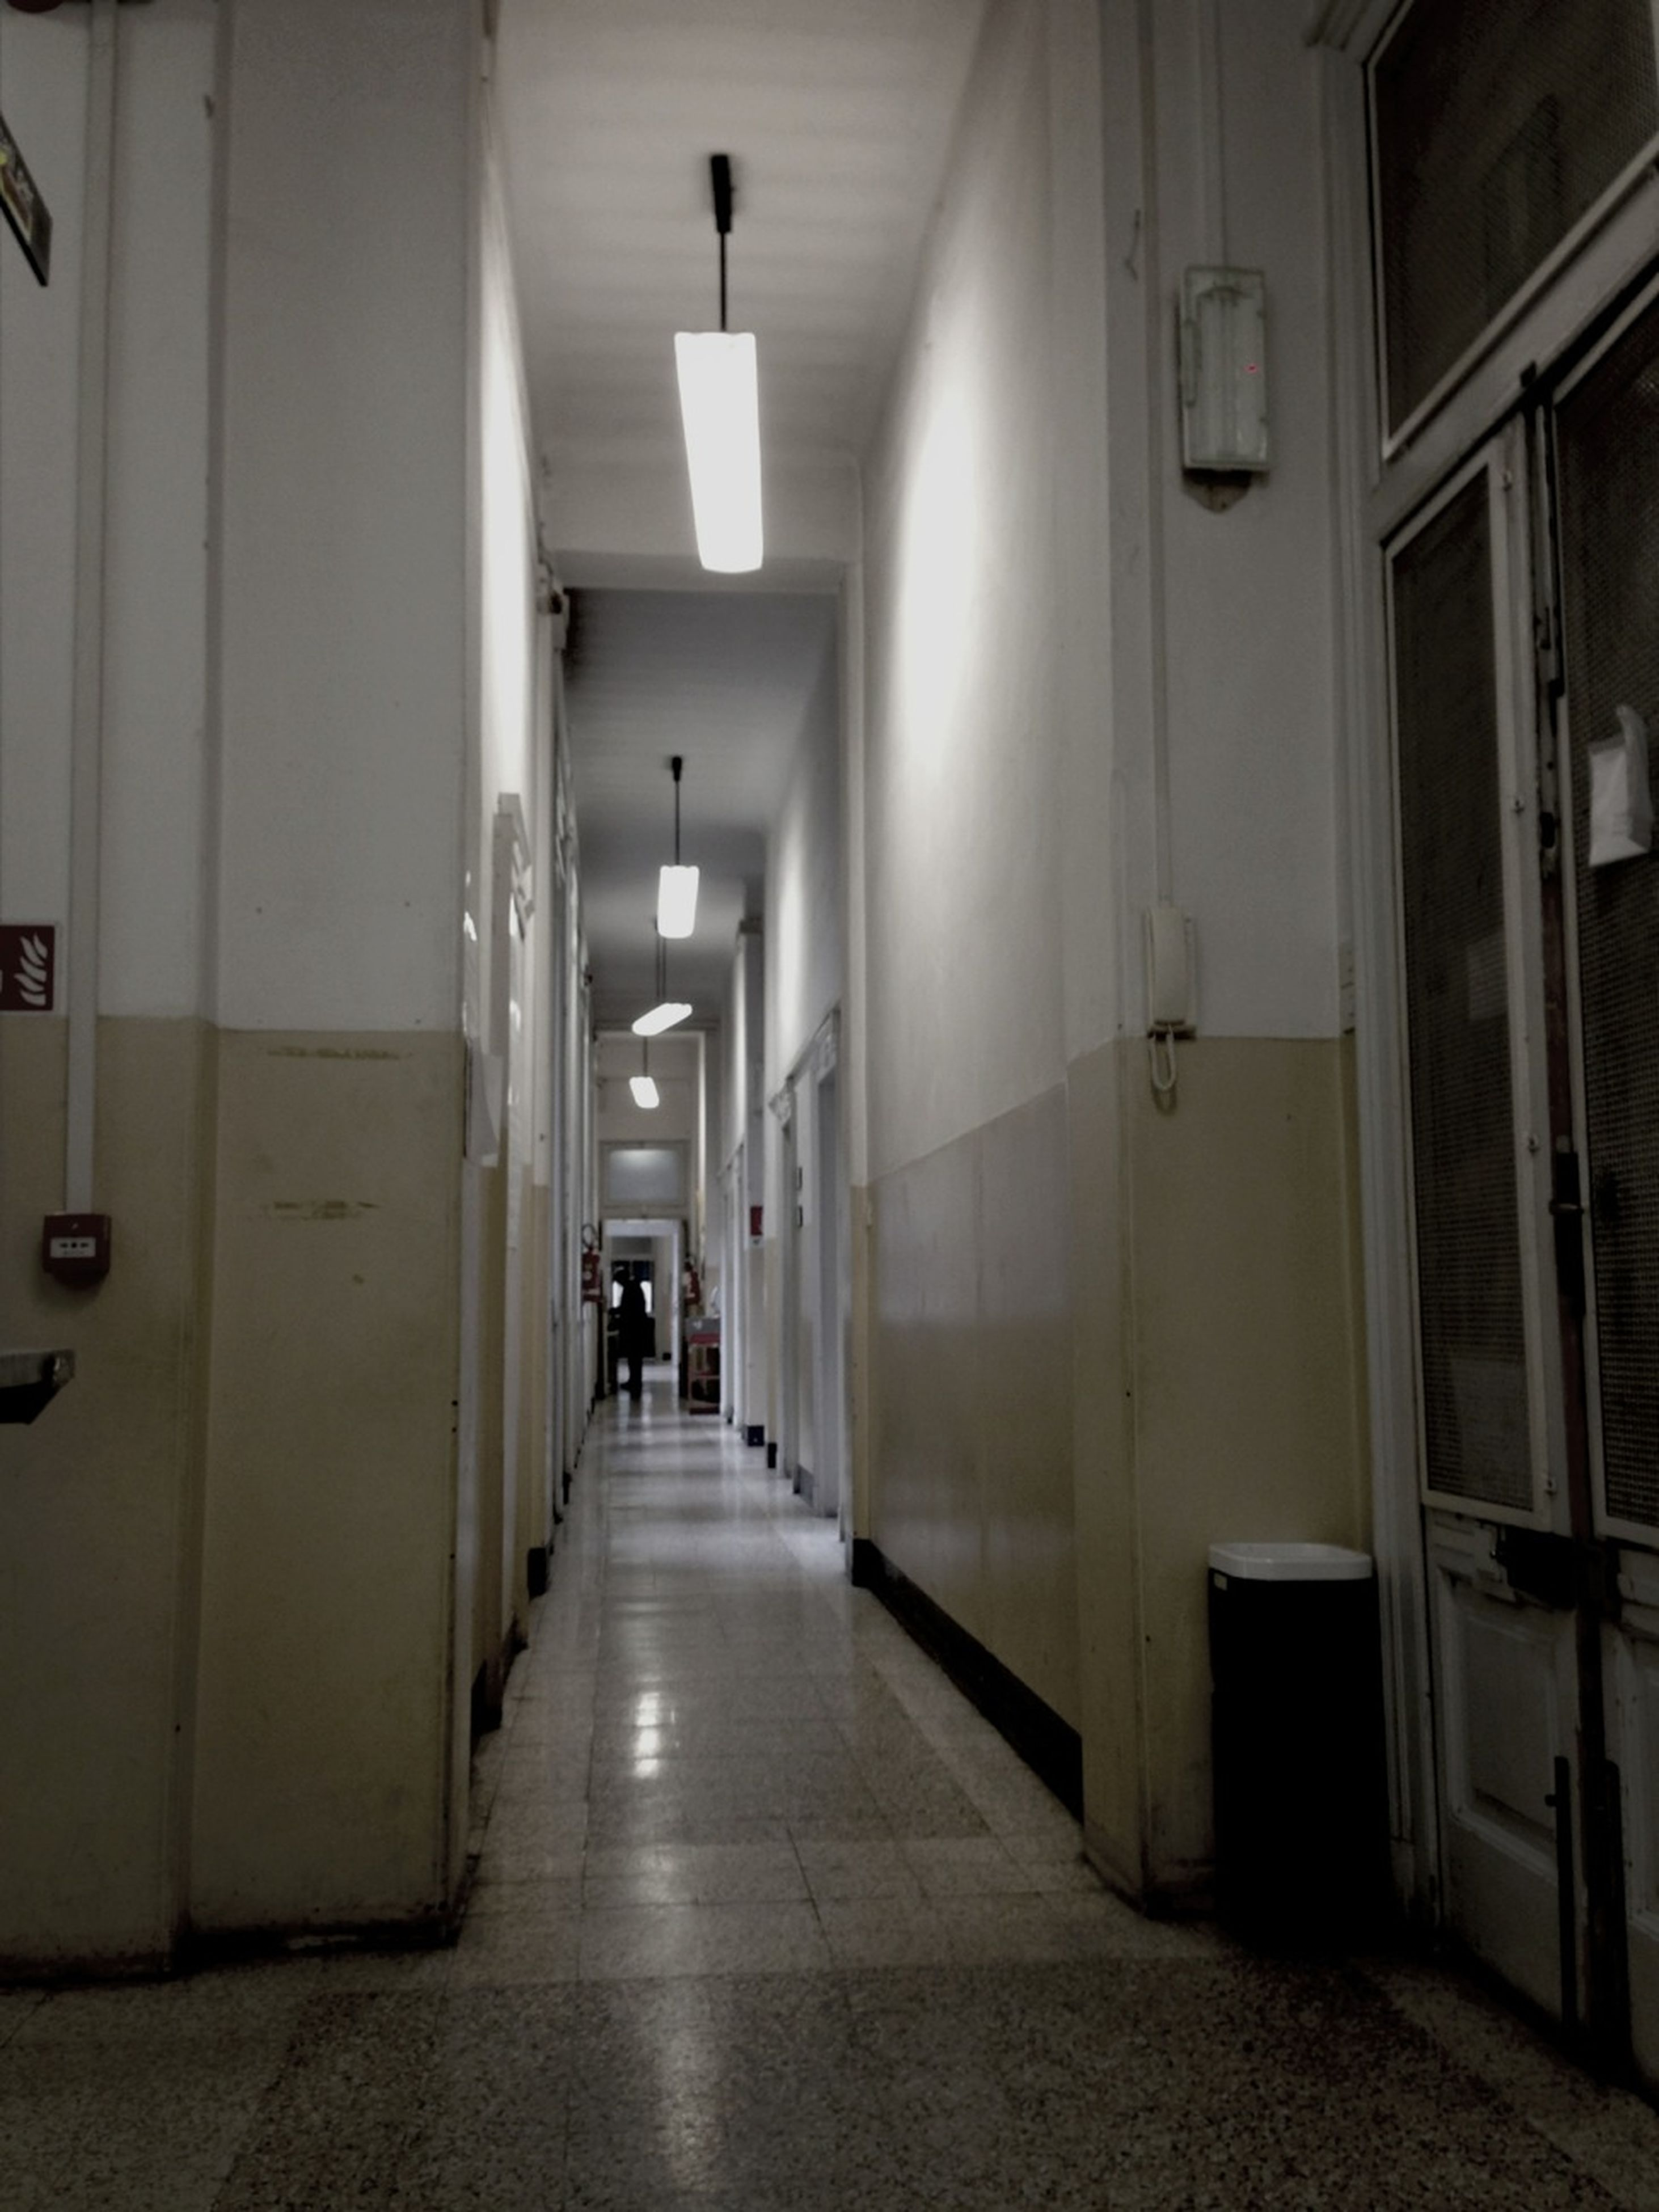 indoors, architecture, built structure, corridor, the way forward, illuminated, lighting equipment, empty, door, diminishing perspective, tiled floor, building, narrow, flooring, wall - building feature, incidental people, absence, building exterior, in a row, vanishing point